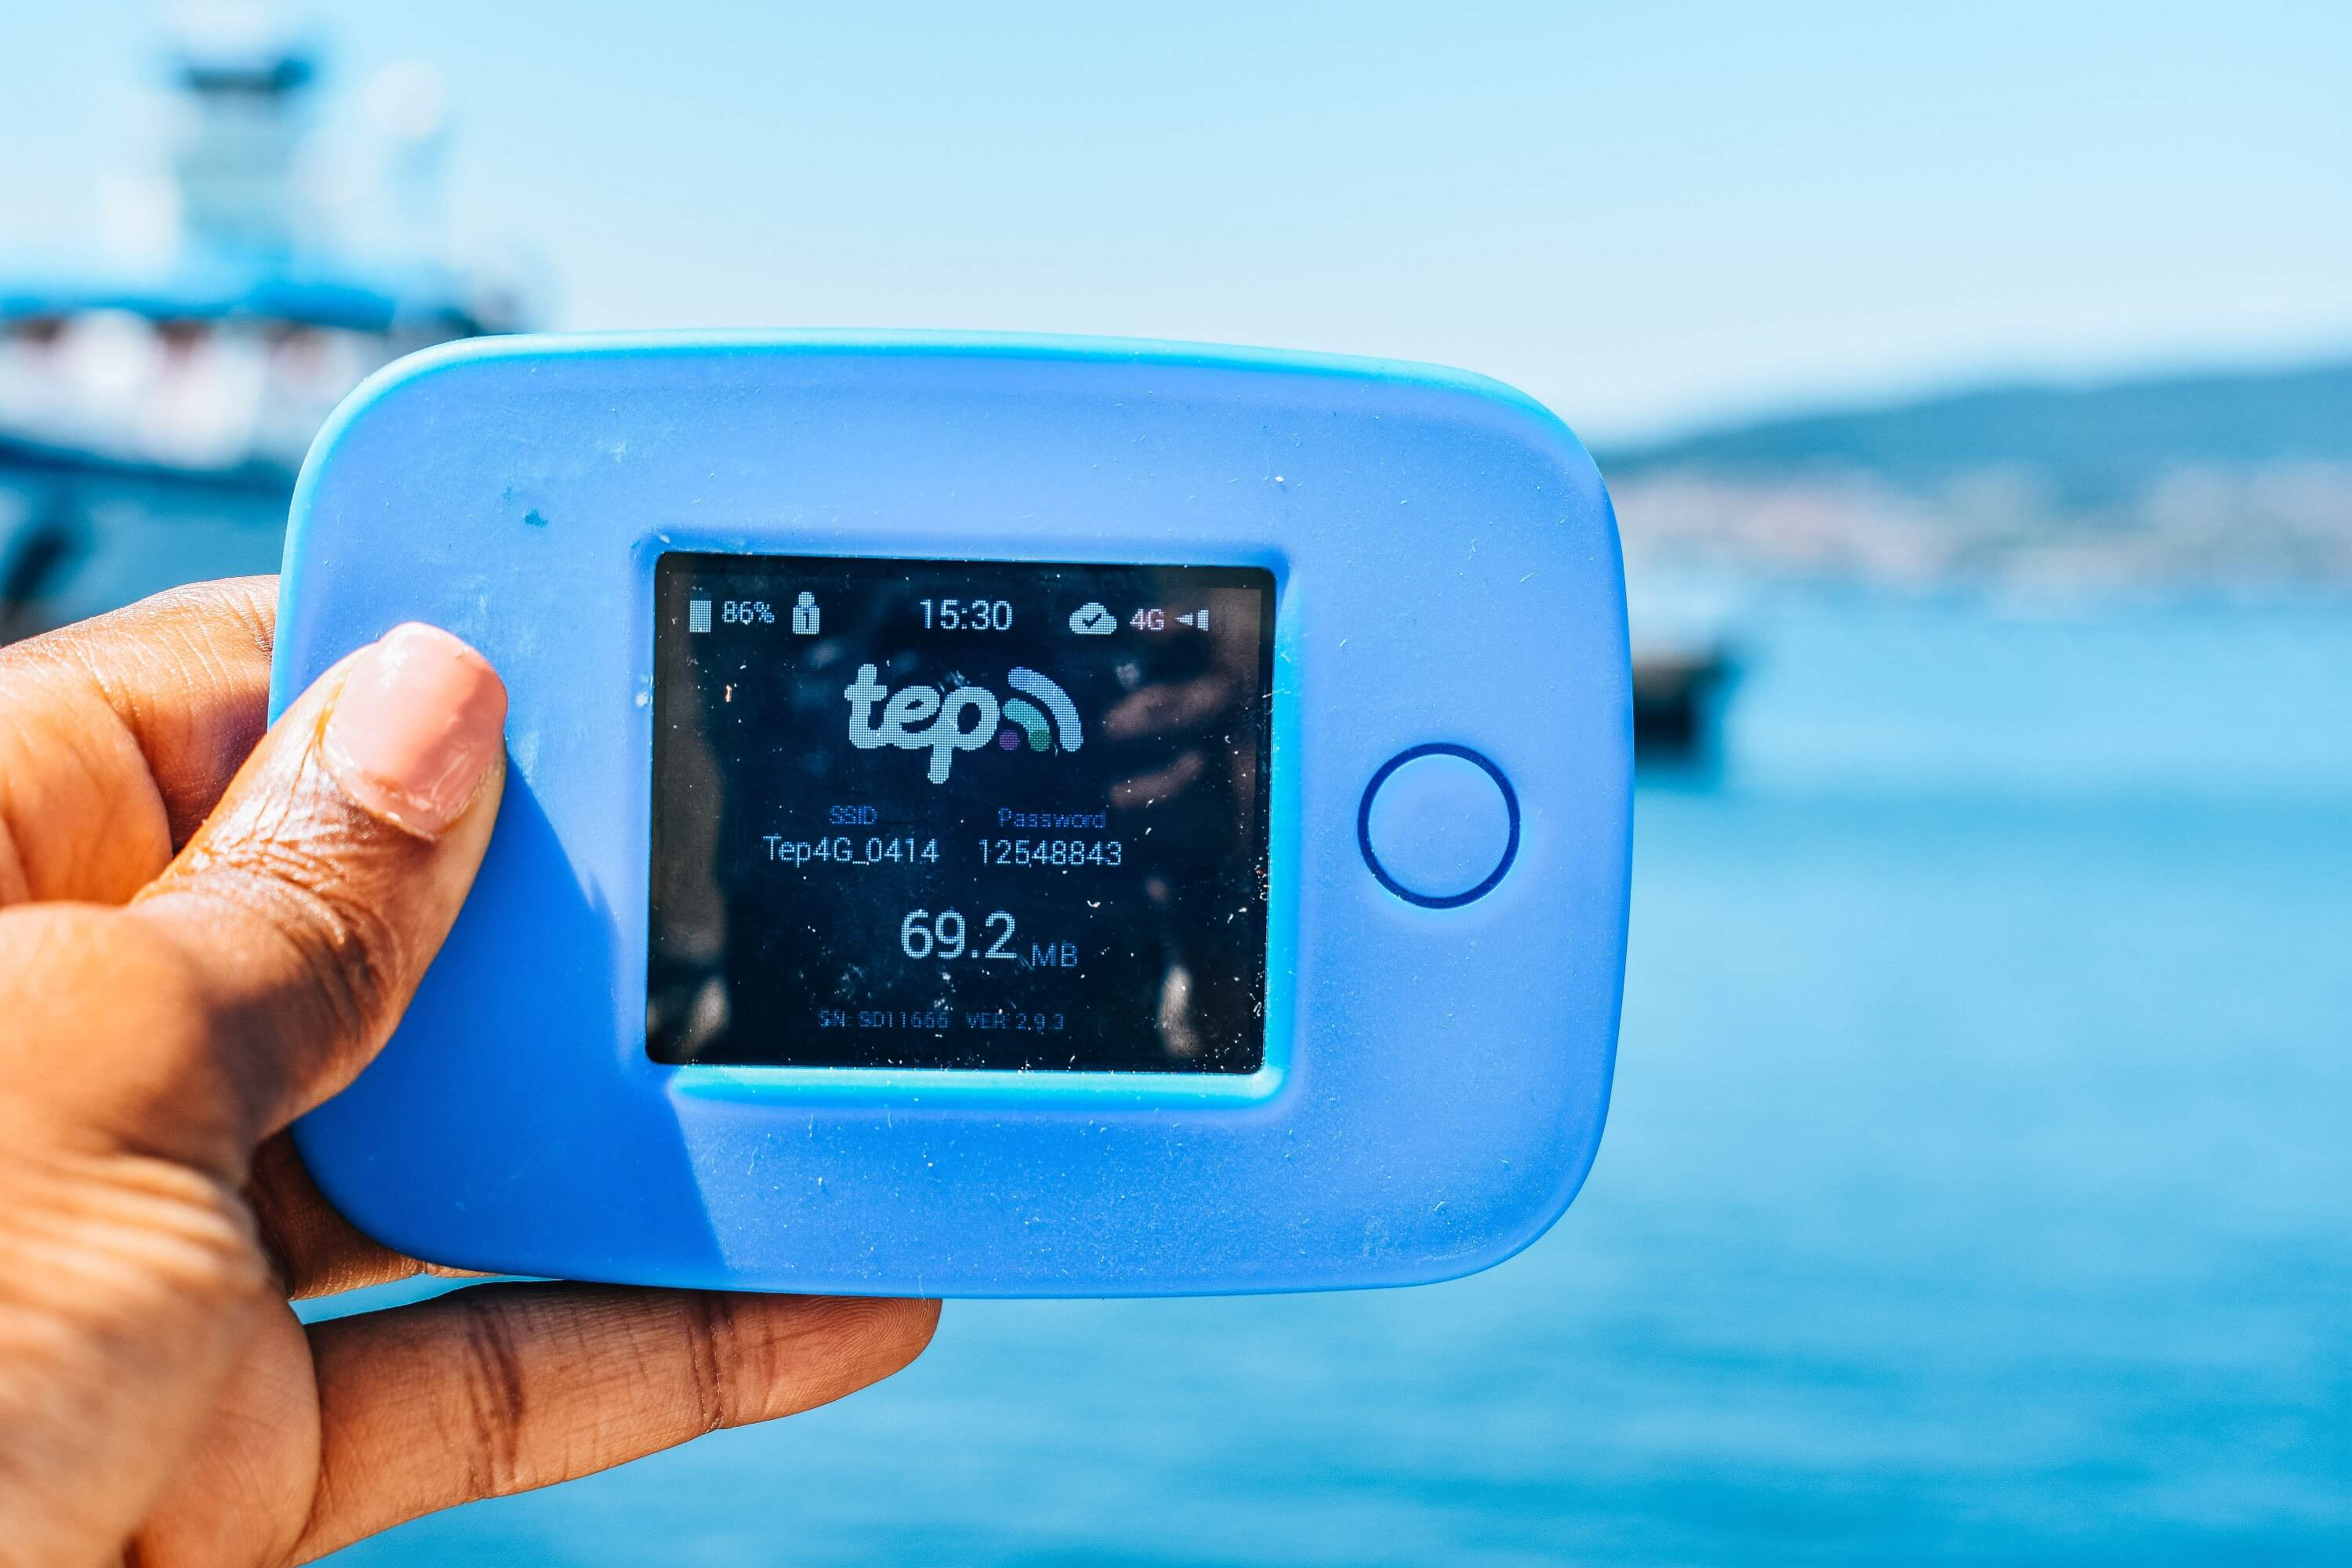 Tep Wireless Review - Using the Teppy in Vigo, Spain